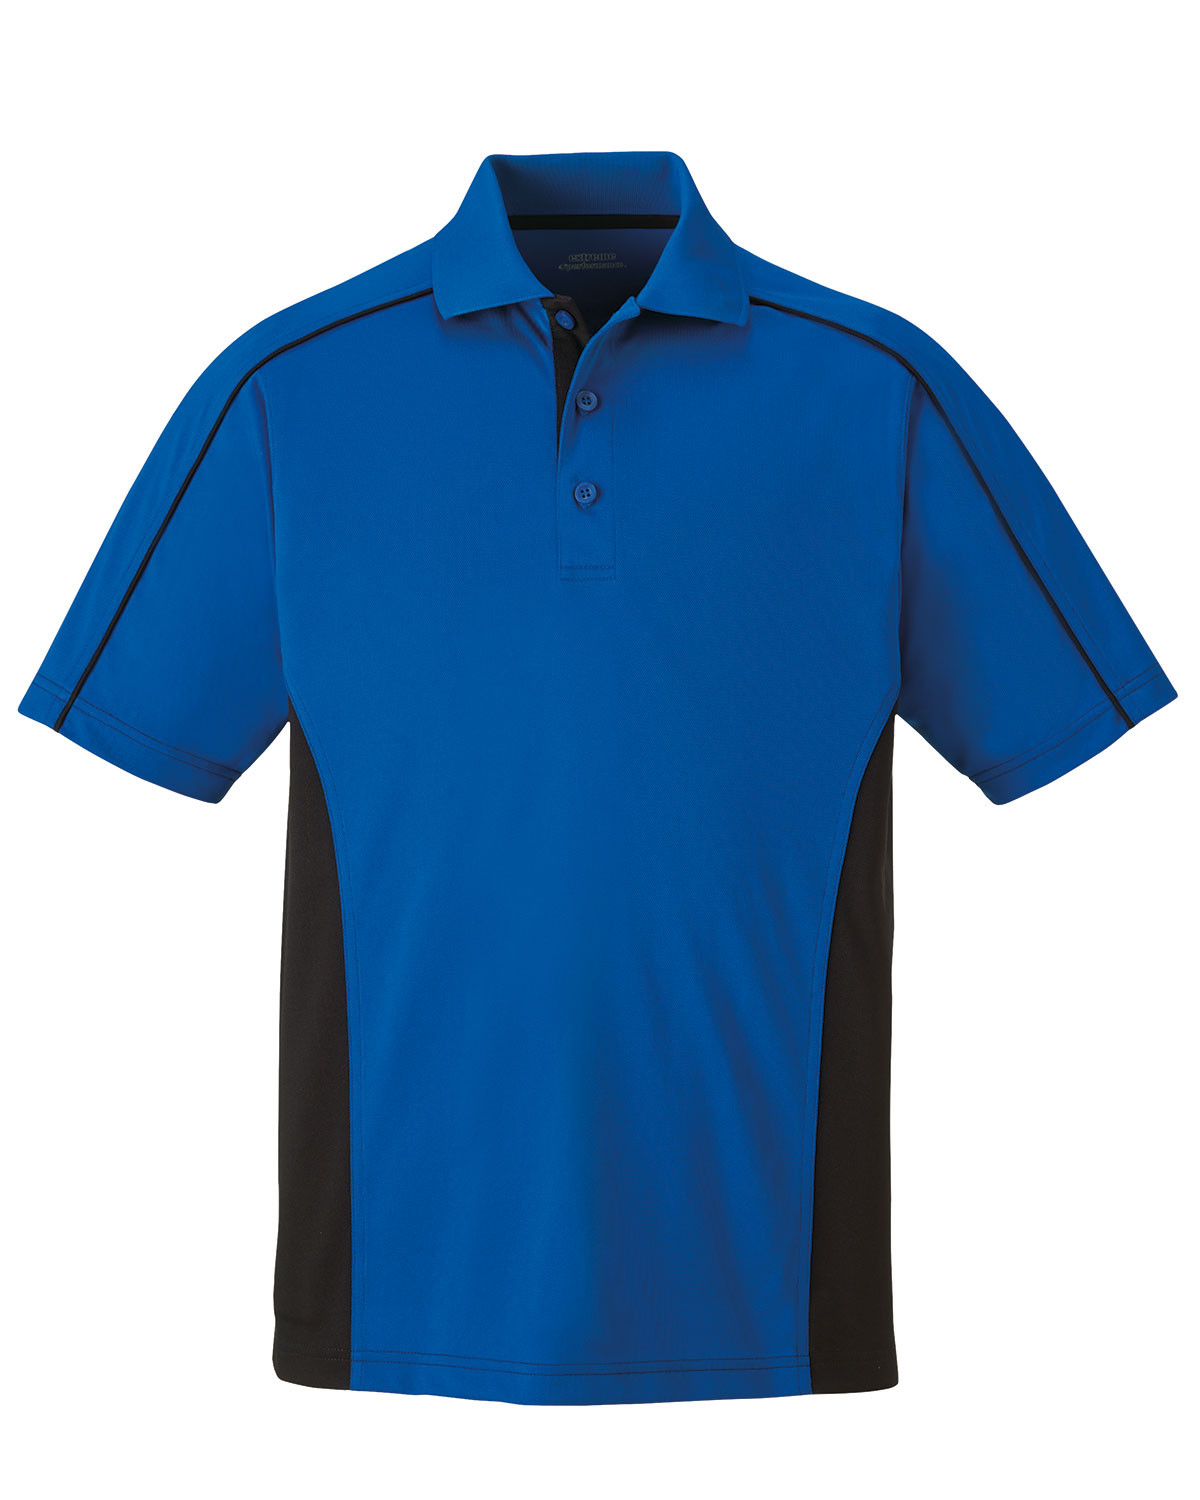 Mens Side Color Block Moisture Wicking Performance Polo Shirt